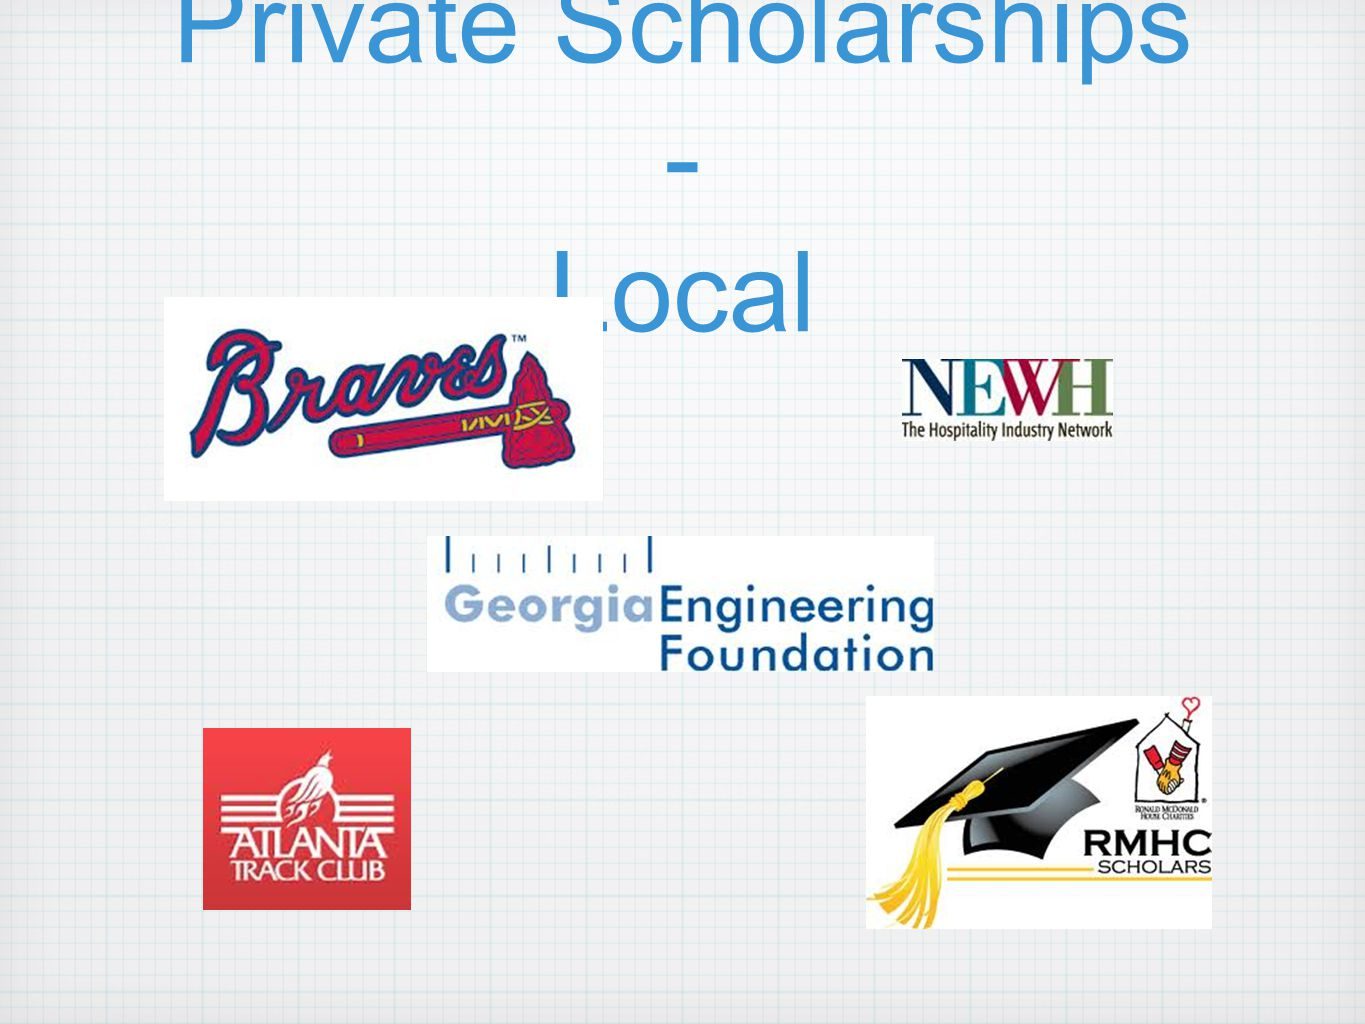 Private Scholarships - Local